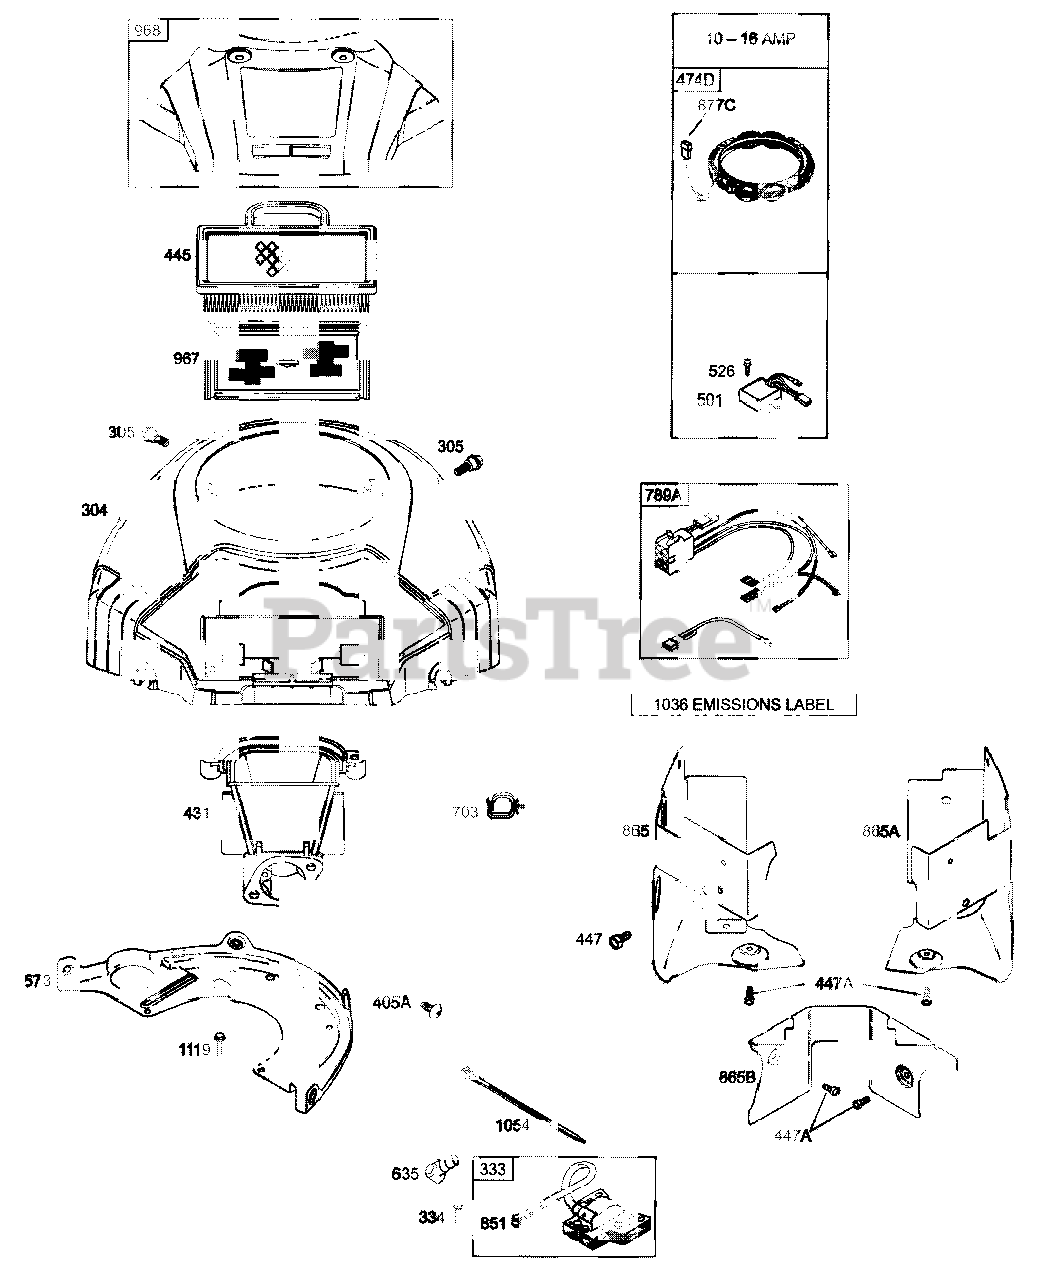 Cub Cadet Z Force 44 Wiring Diagram from www.partstree.com